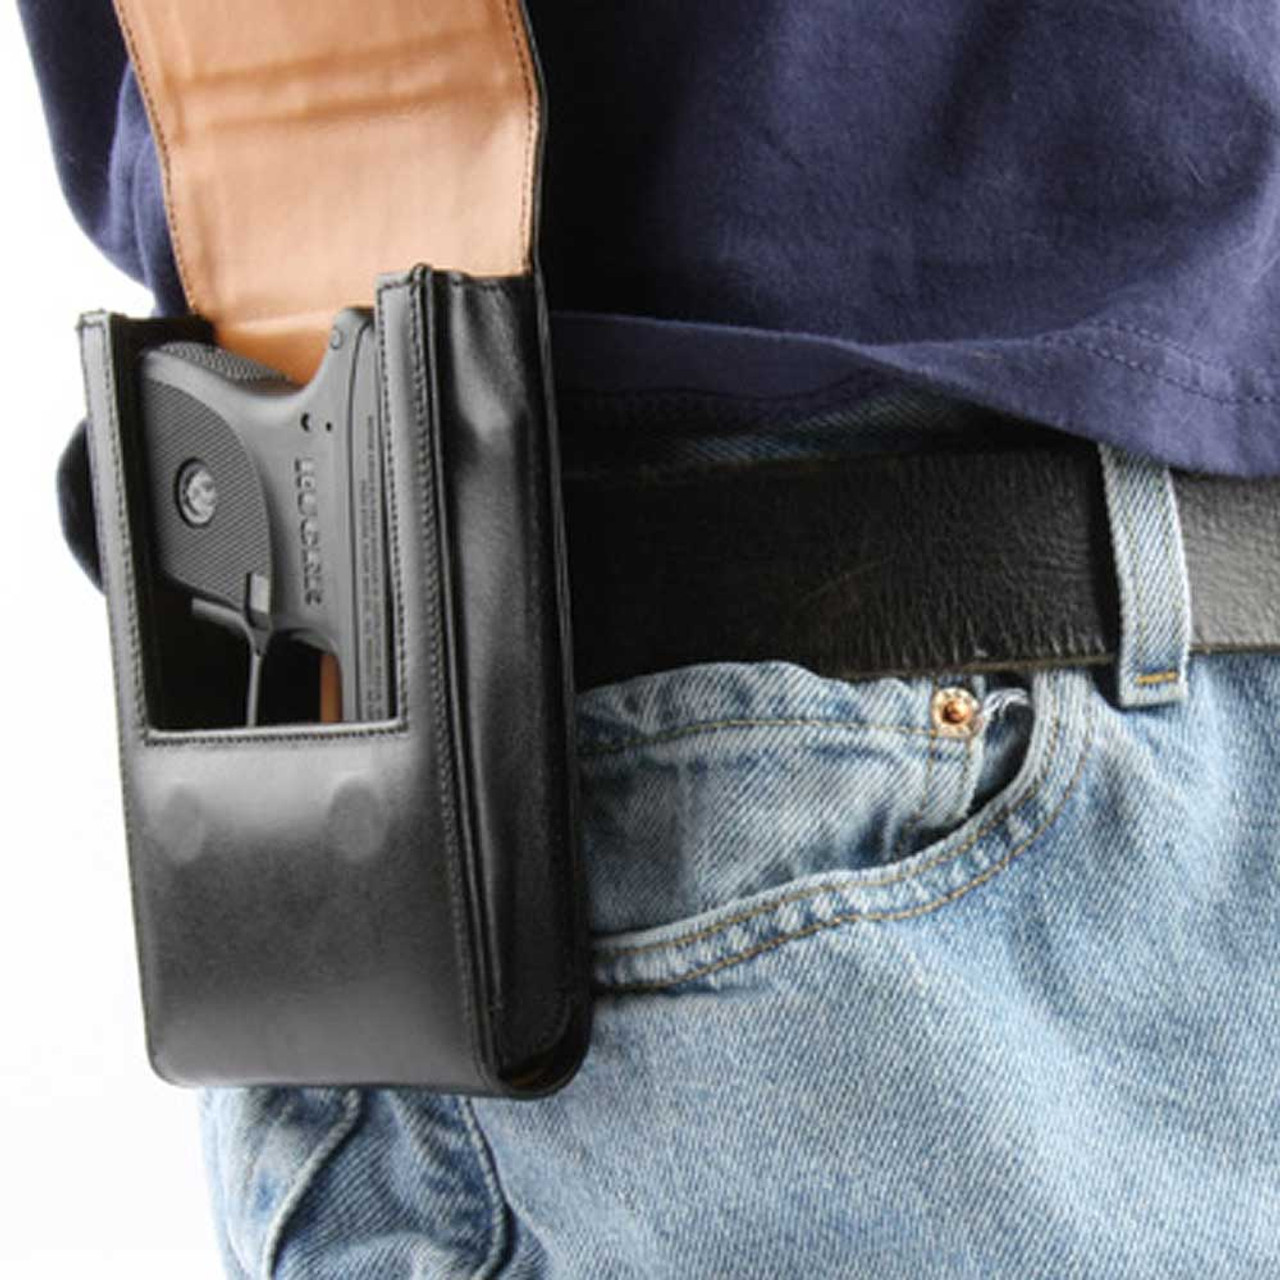 M&P 9c Sneaky Pete Holster (Belt Clip)